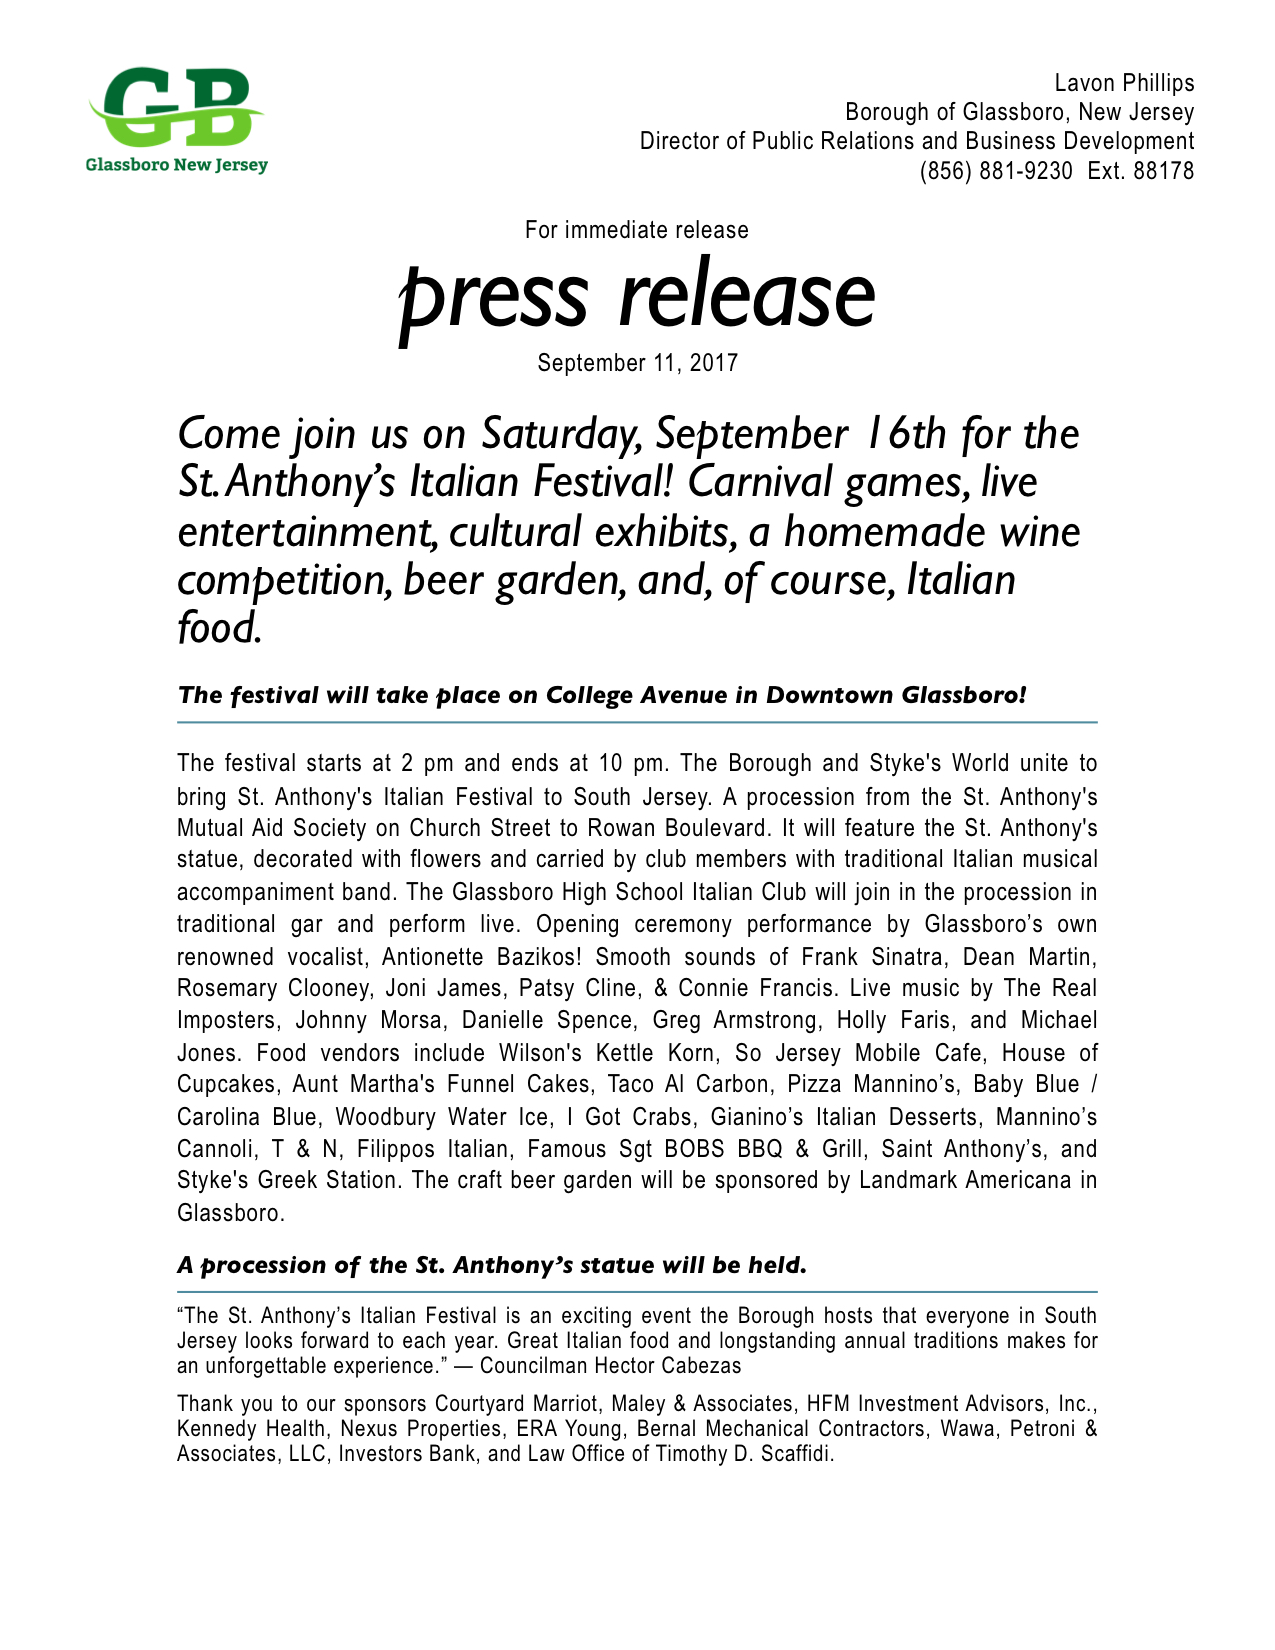 2017 St. Anthony's Italian Festival Press release.jpeg